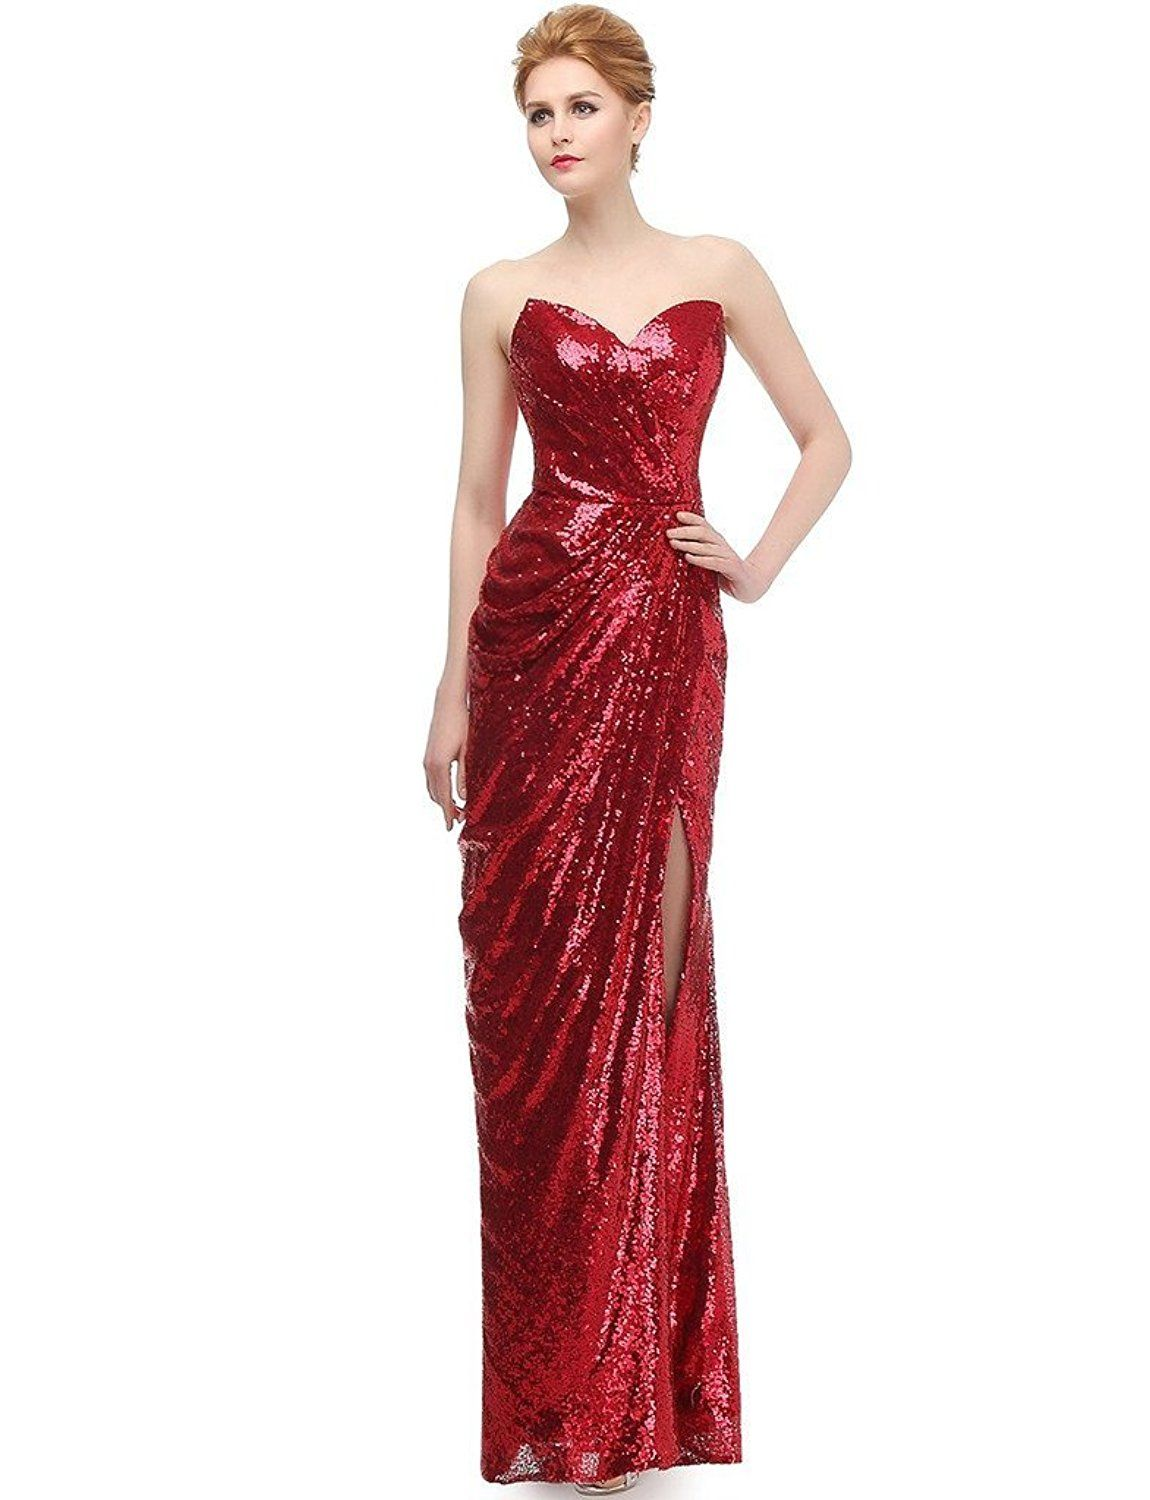 Jydress Women S Sweetheart Strapless Sequins Party Prom Evening Dresses Special Product Just For You Red Sequin Dress Evening Dresses Gala Evening Dress [ 1500 x 1150 Pixel ]